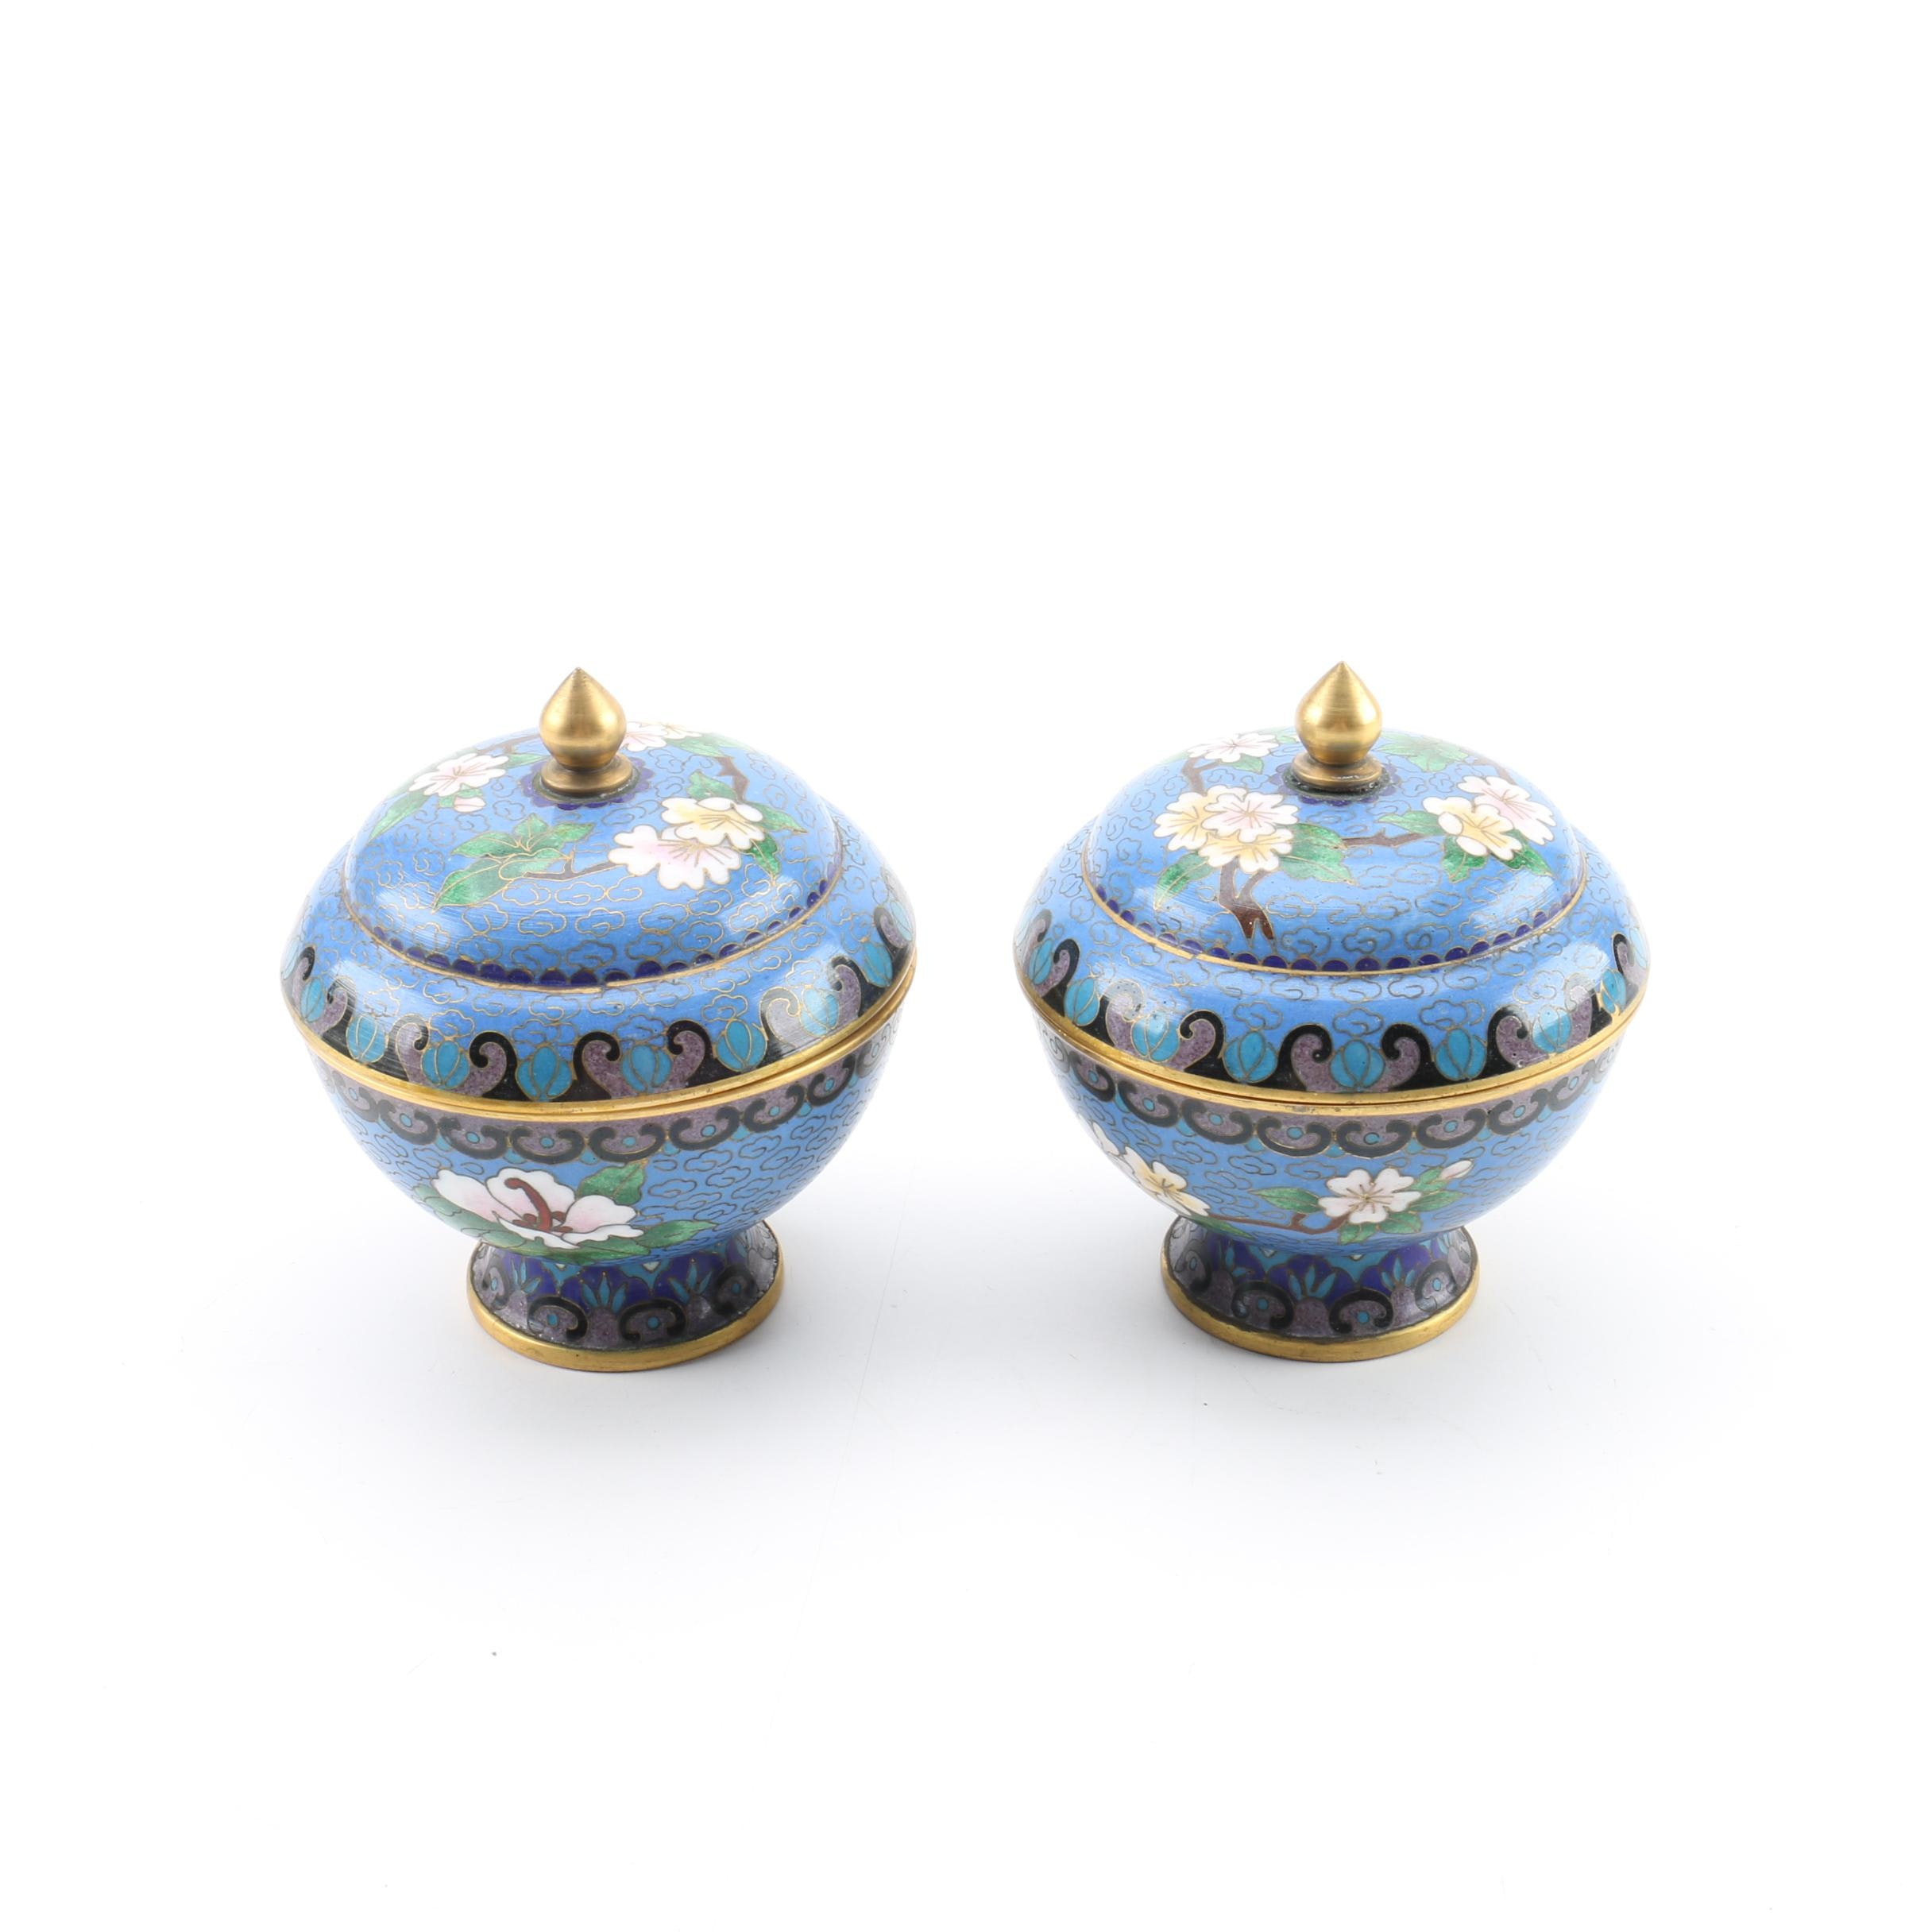 Chinese Cloisonné Lidded Jars